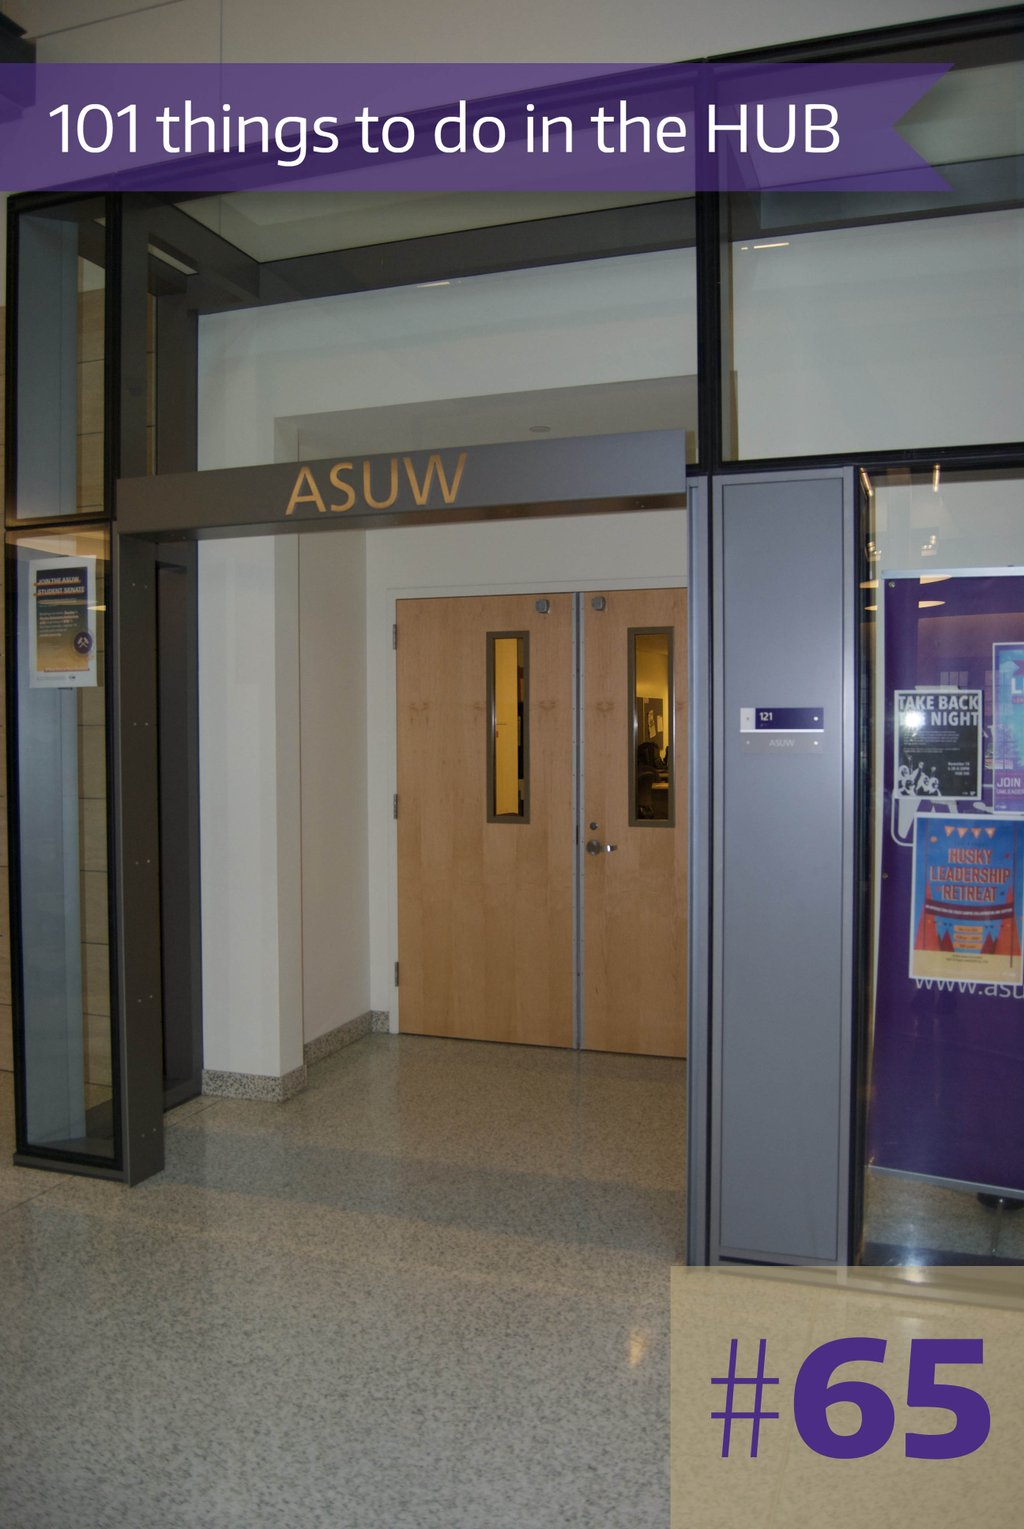 65. Apply for an ASUW job